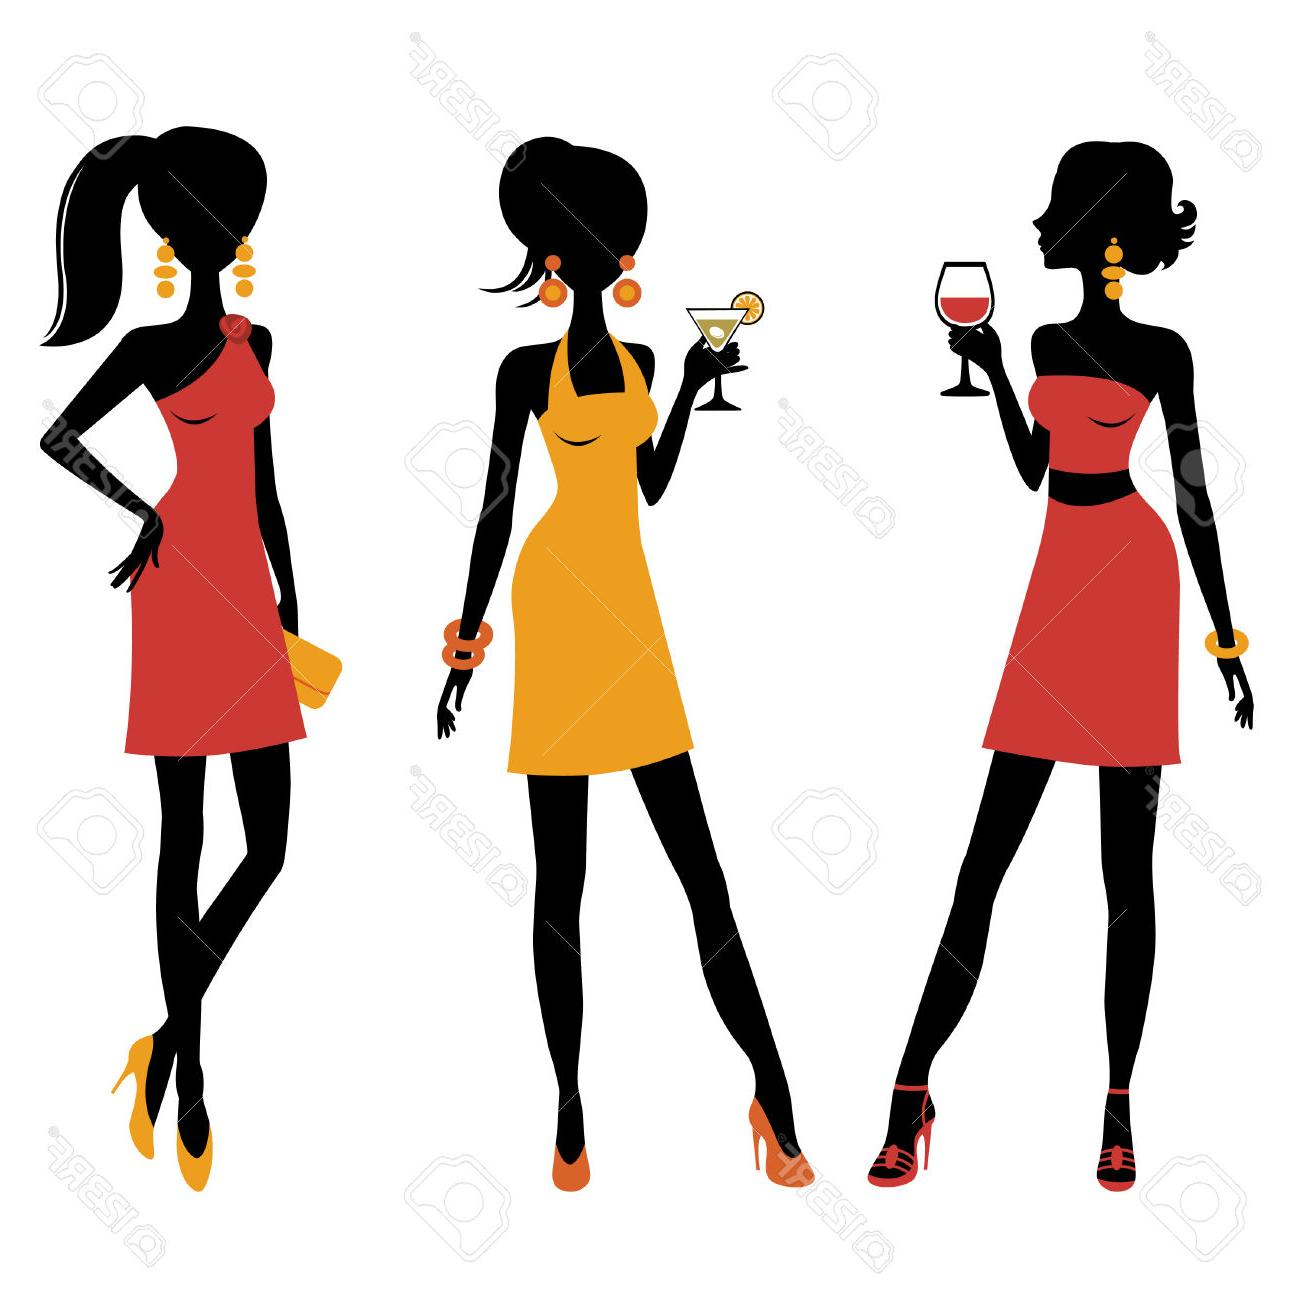 Group Of Girls Clipart